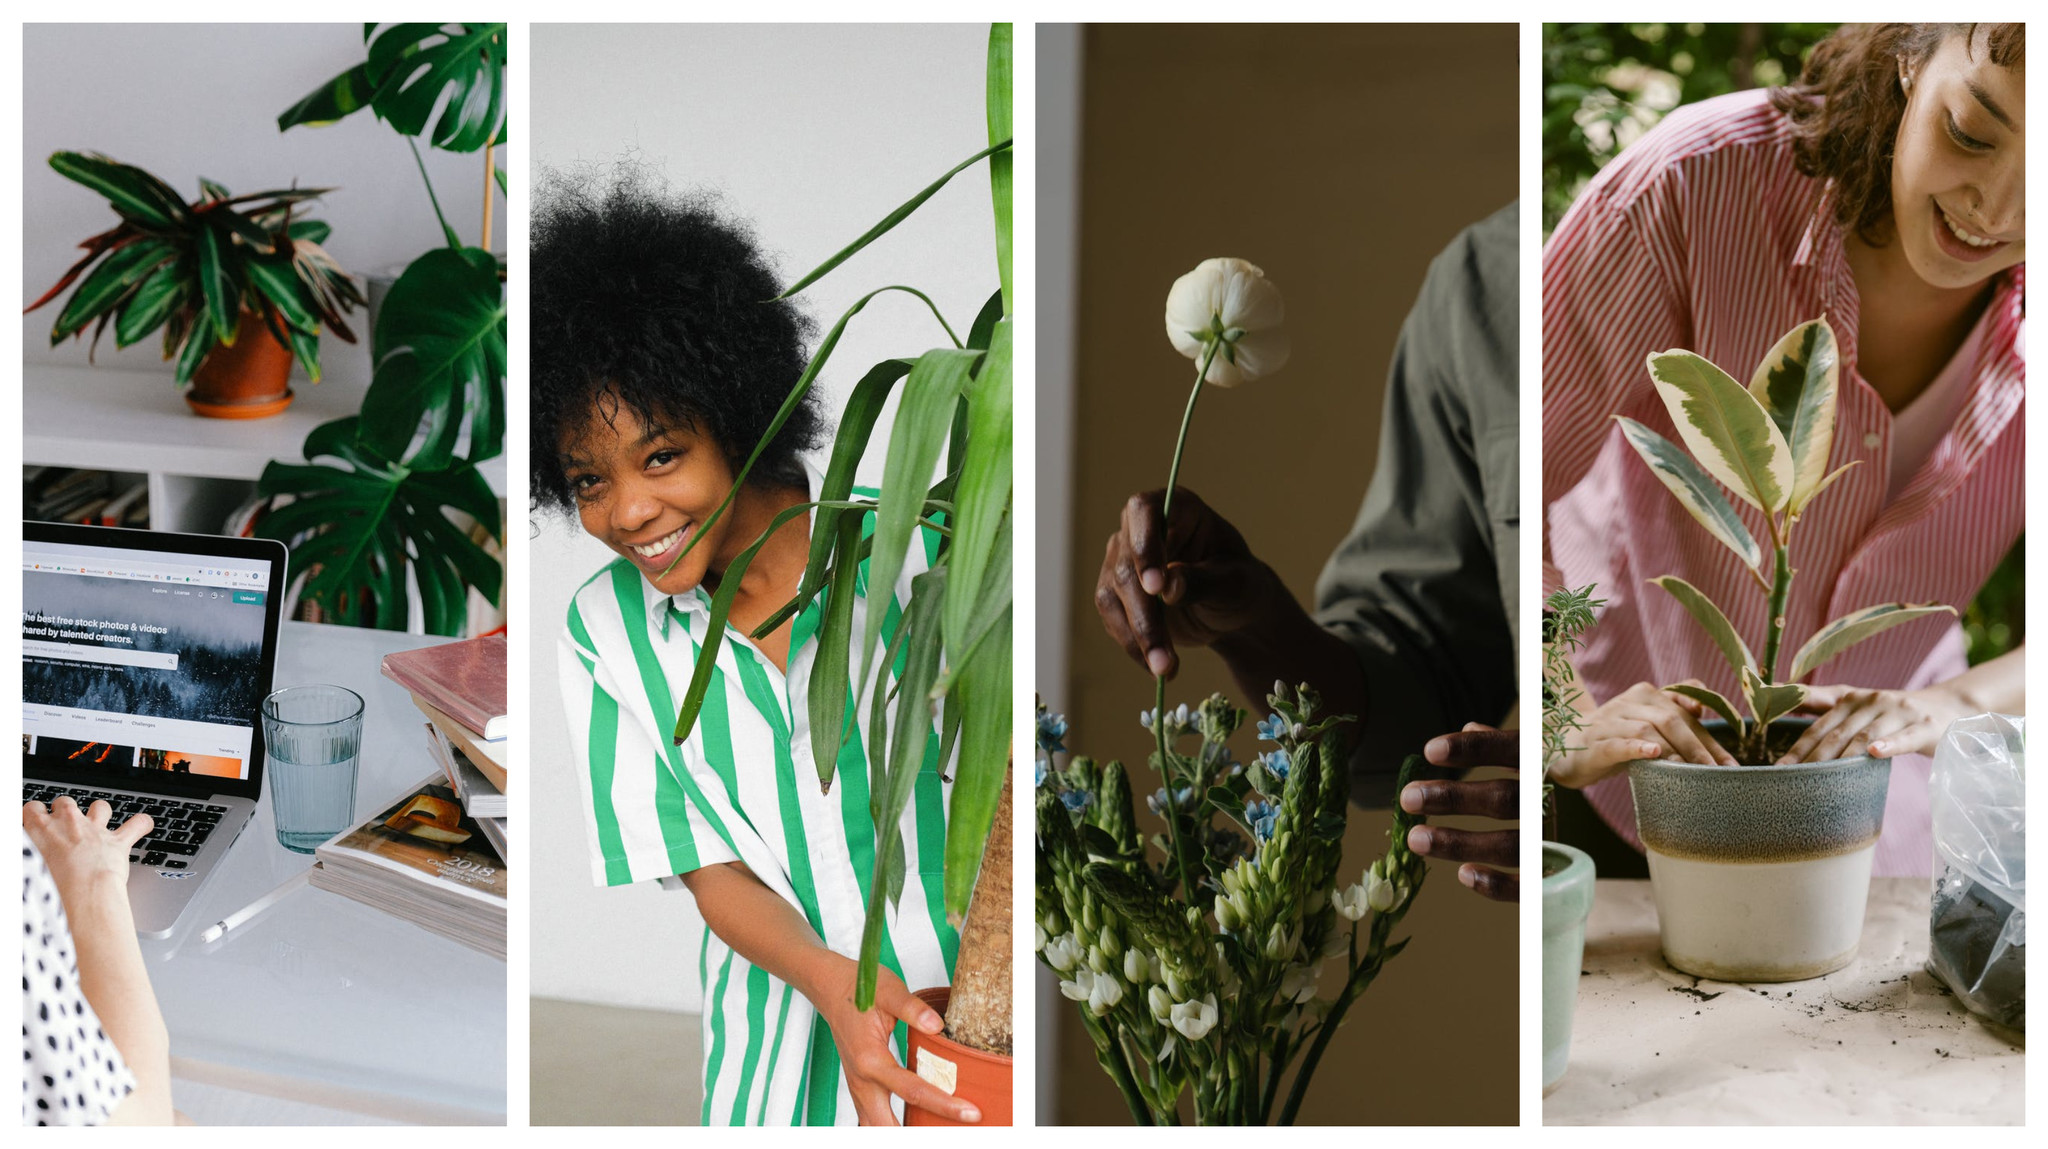 7 Ways House Plants and Flowers Improve Mental Well-Being